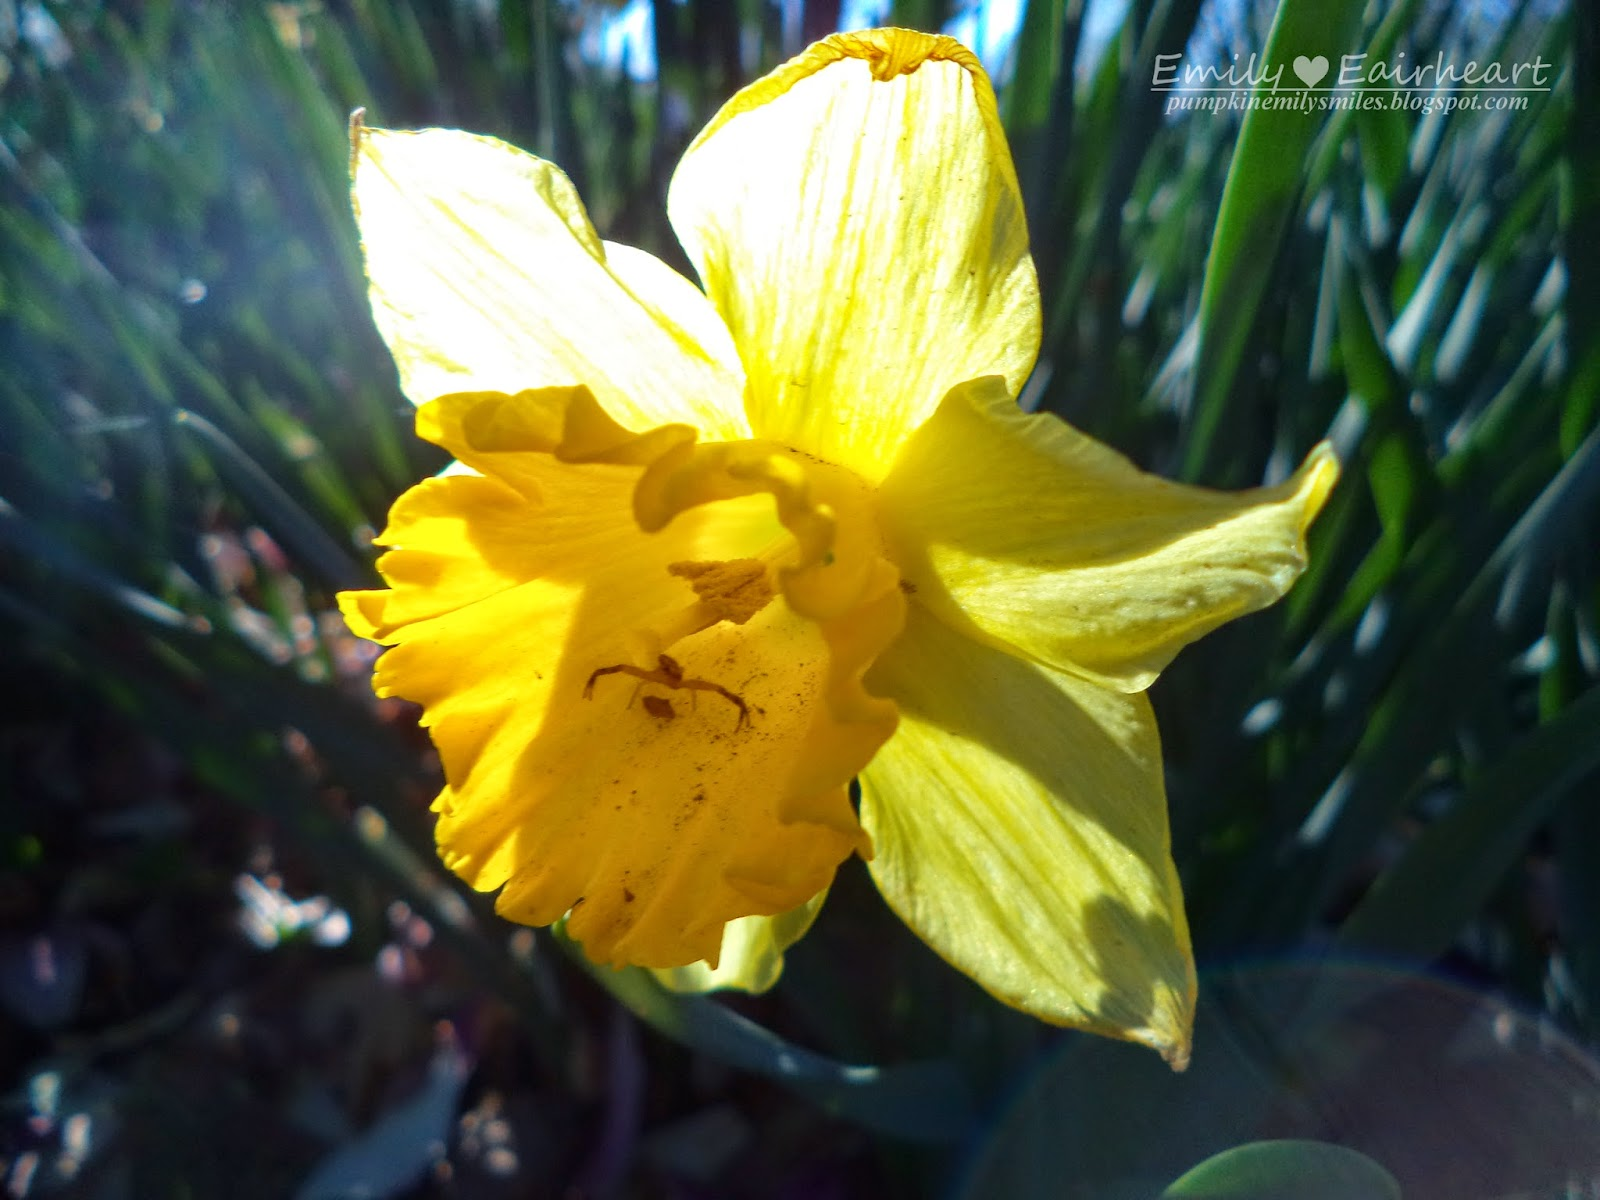 Bright yellow Daffodil